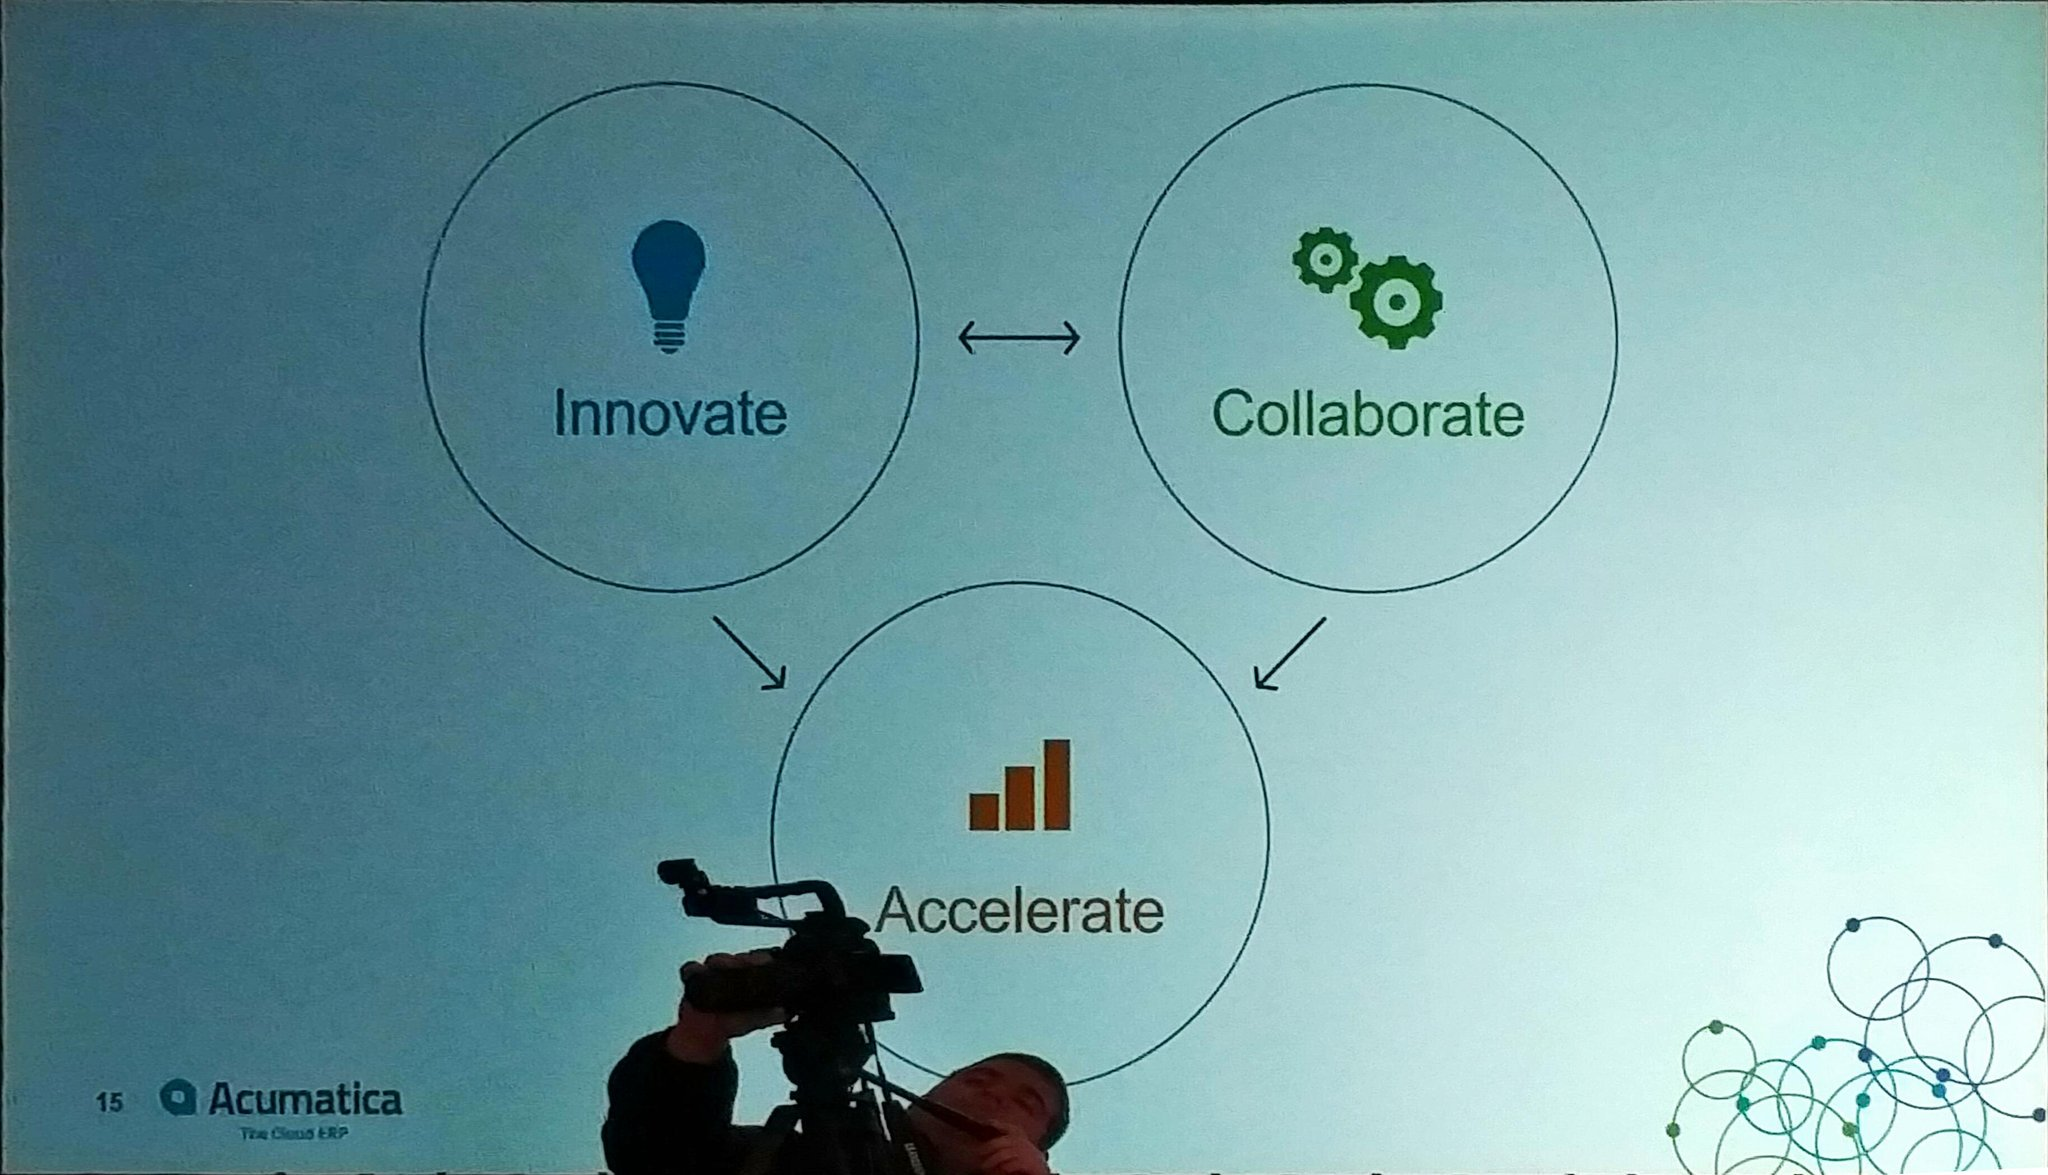 .@jon_roskill - themes if #AcumaticaSummit this year  - Innovate  - Collaborate  - Accelerate https://t.co/Duo1MVGpeQ